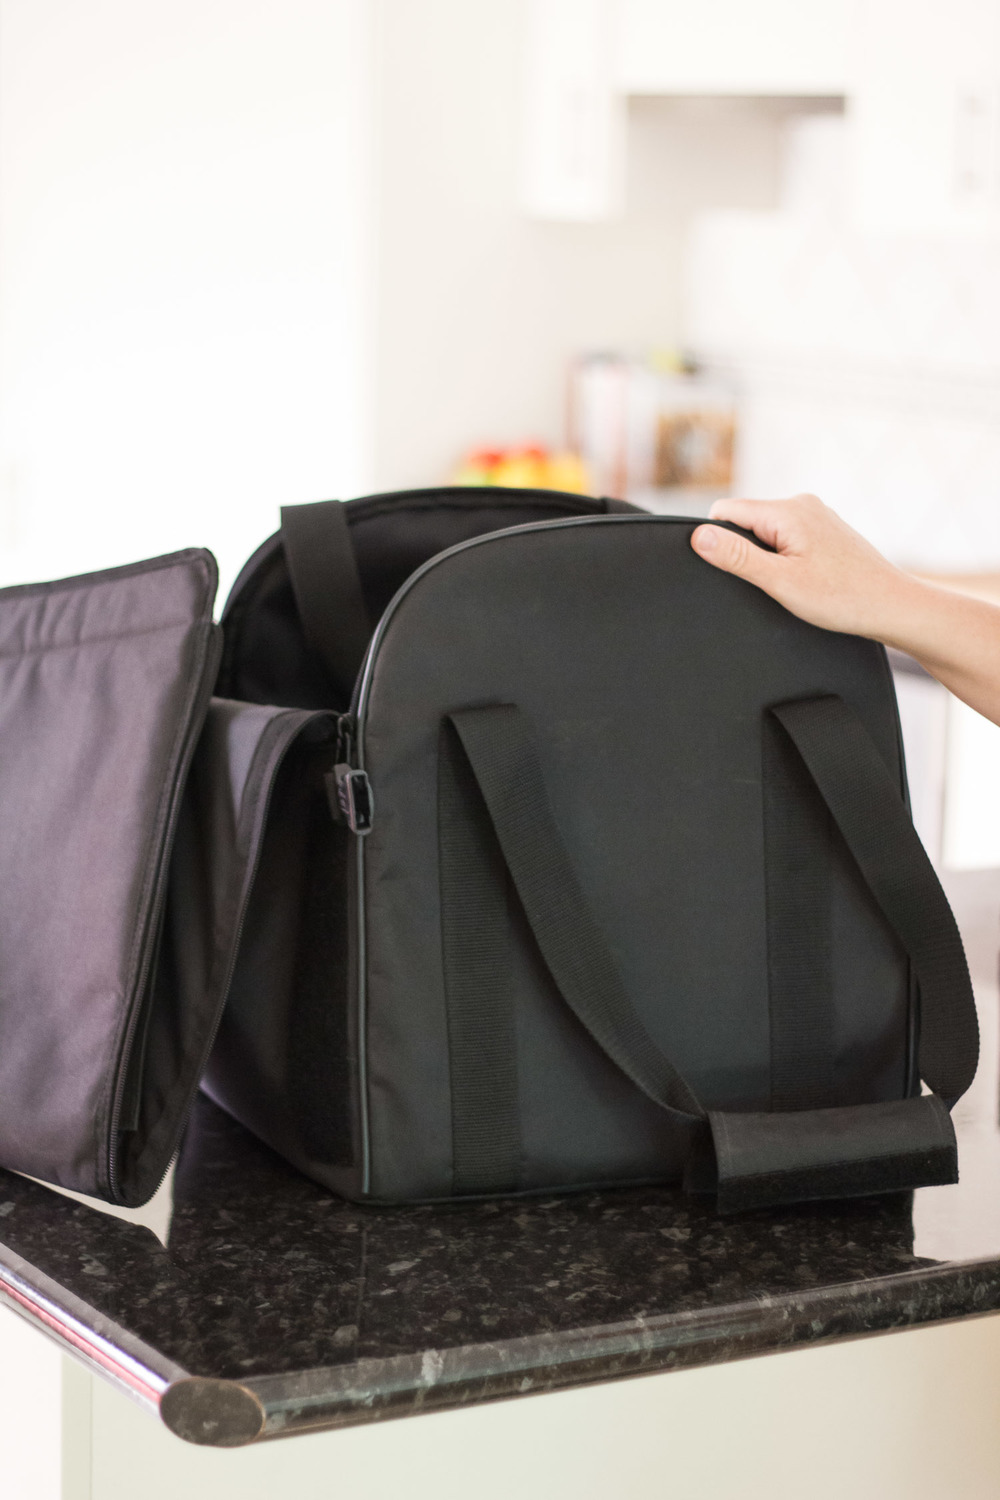 WholeHome_bag-42.jpg